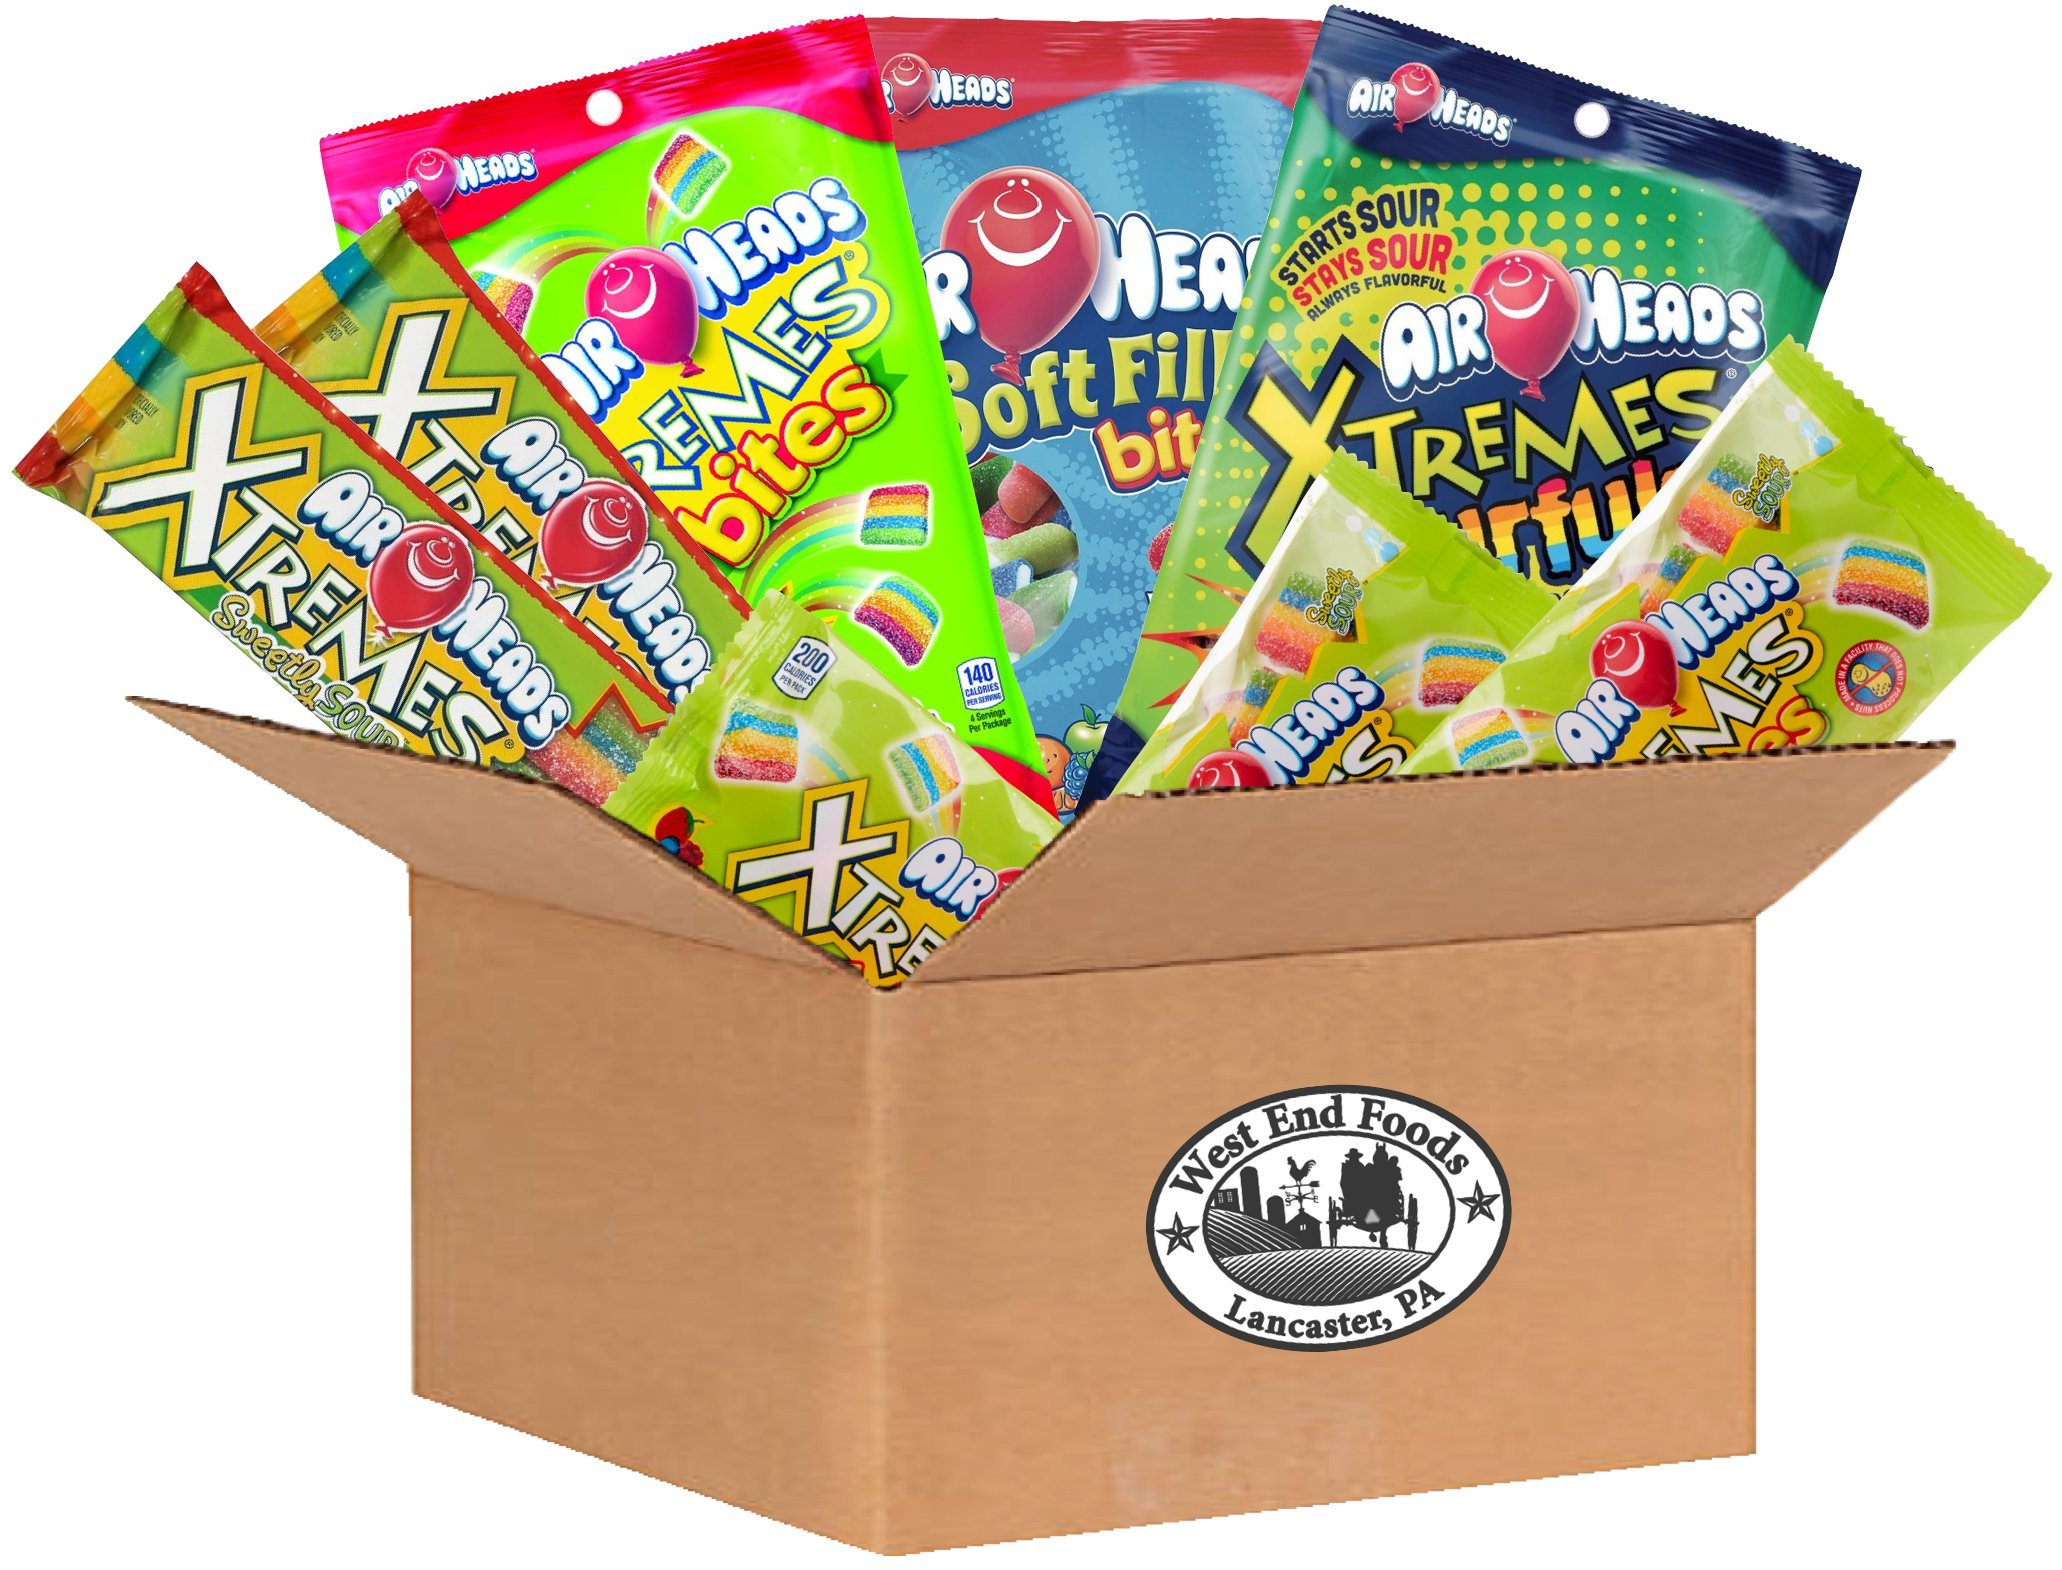 Airheads and Xtremes Kids Sour Candy Variety Bundle - Airheads Xtremes Sourfuls Rainbow Berry, Airheads Soft Filled Bites, Airheads Xtreme Sweetly Sour Belts,and Airheads Xtreme Bites Peg Bag by West End Foods